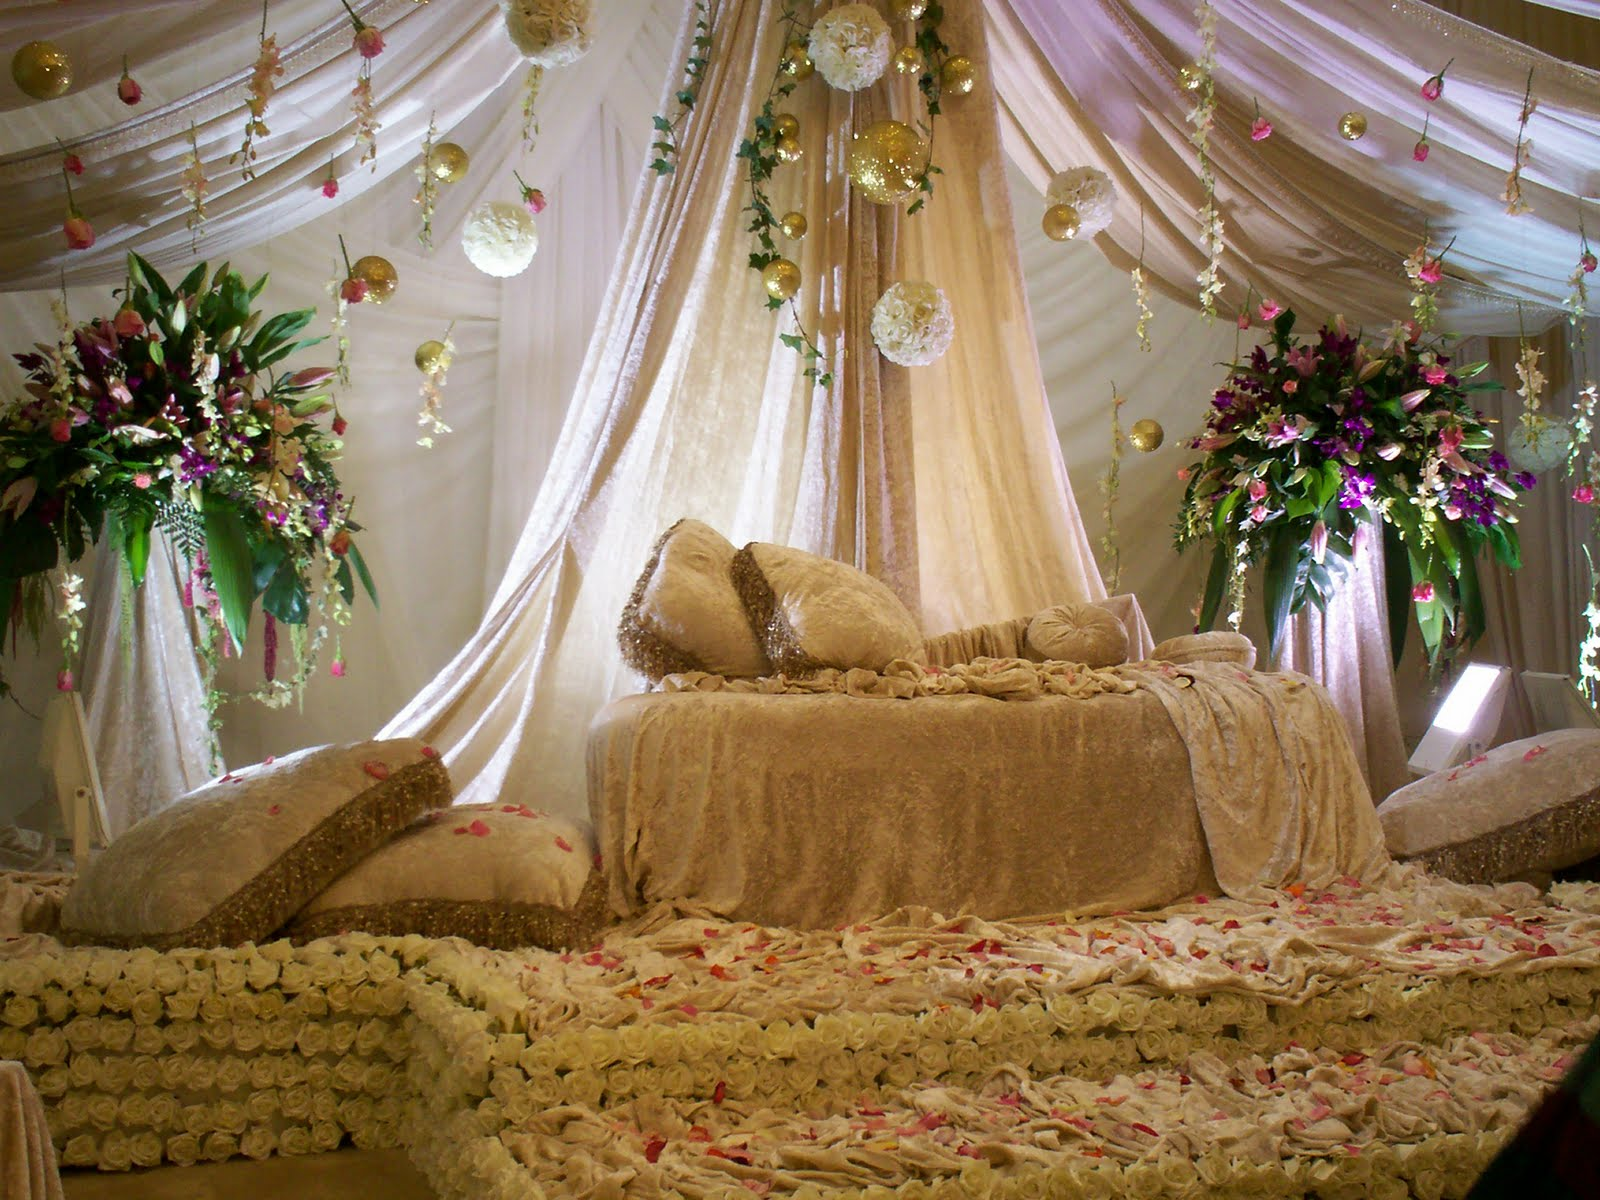 Wedding decorations arabic wedding stage decoration for Arab wedding stage decoration